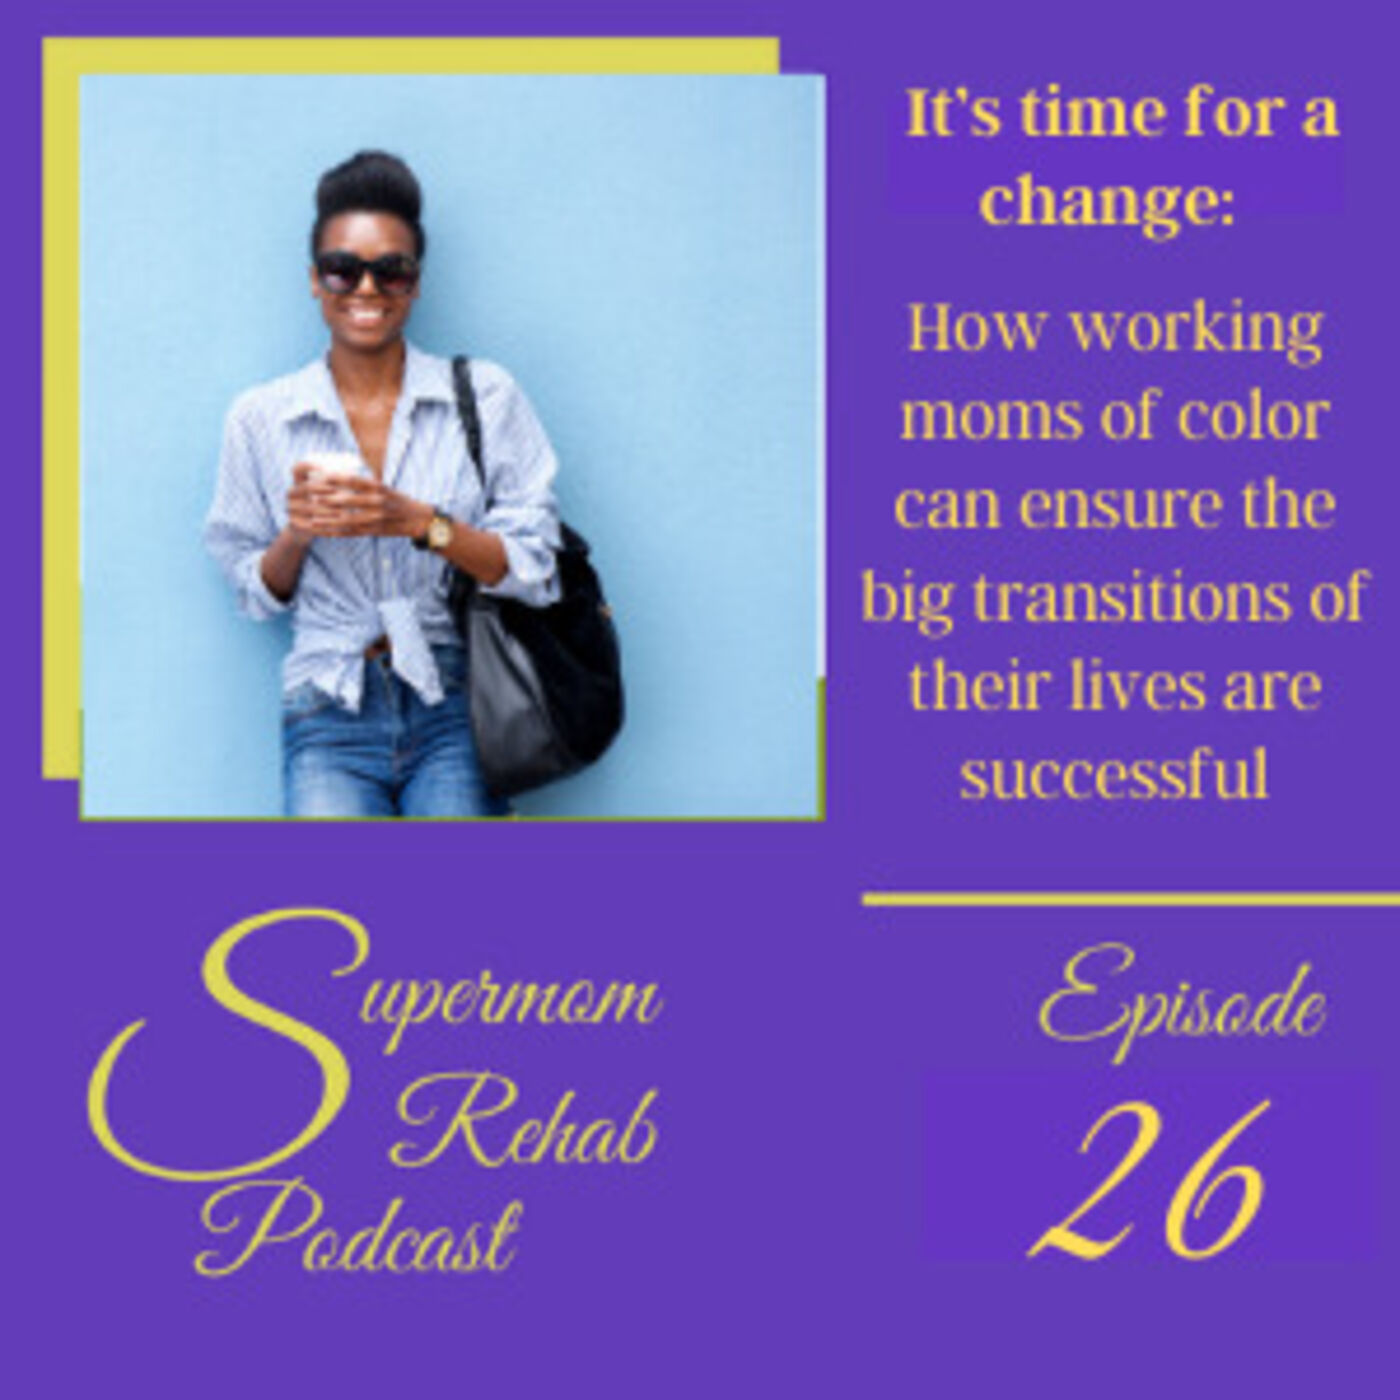 Episode 26: It's time for a change: How working moms of color can ensure the big transitions of their life are successful!